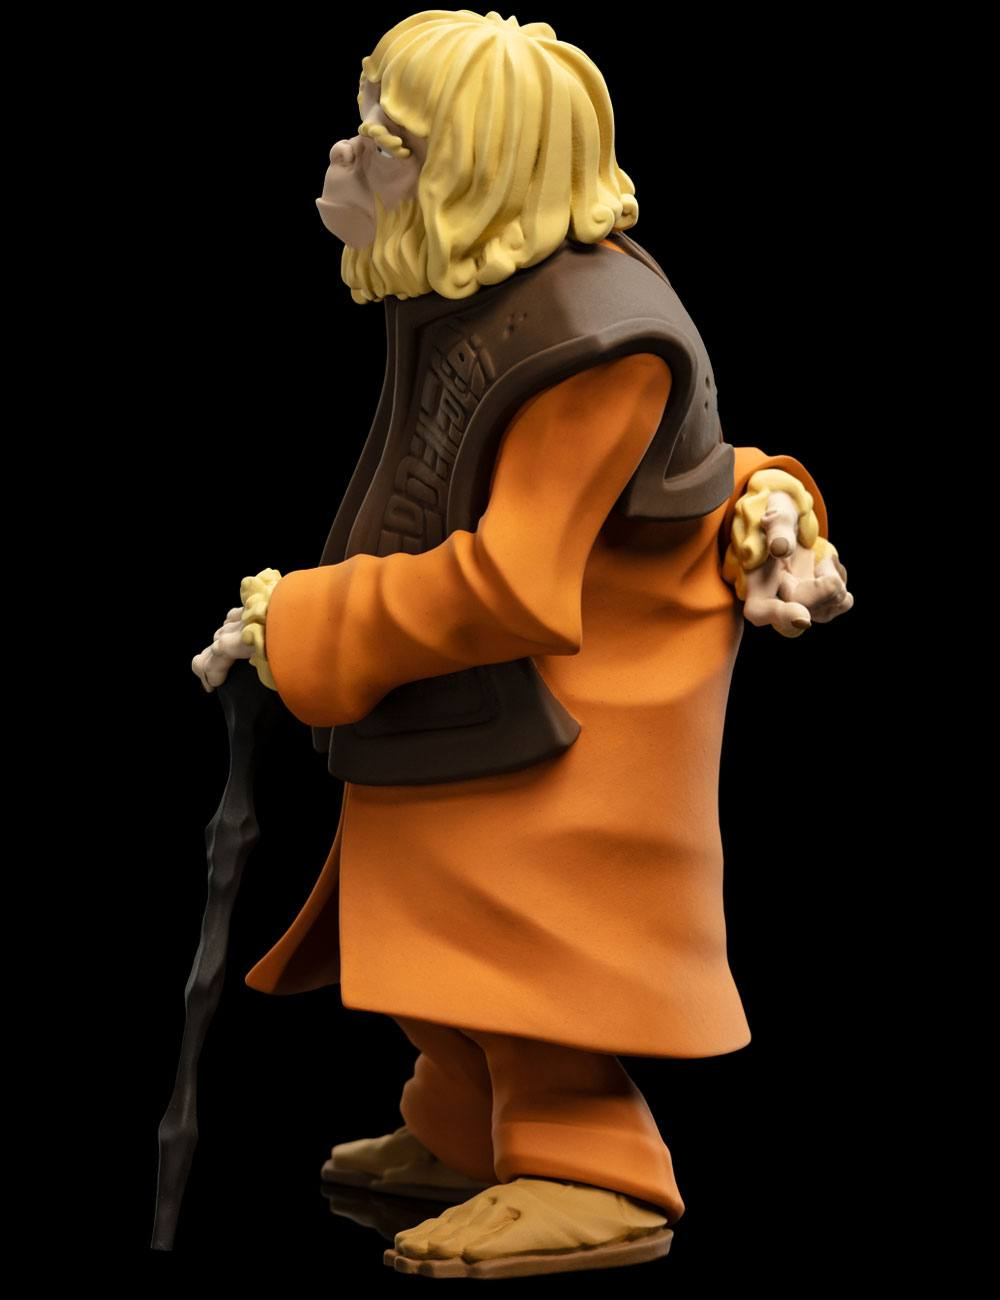 Weta Planet of the Apes Dr. Zaius Mini Epics Vinyl Figure Statue